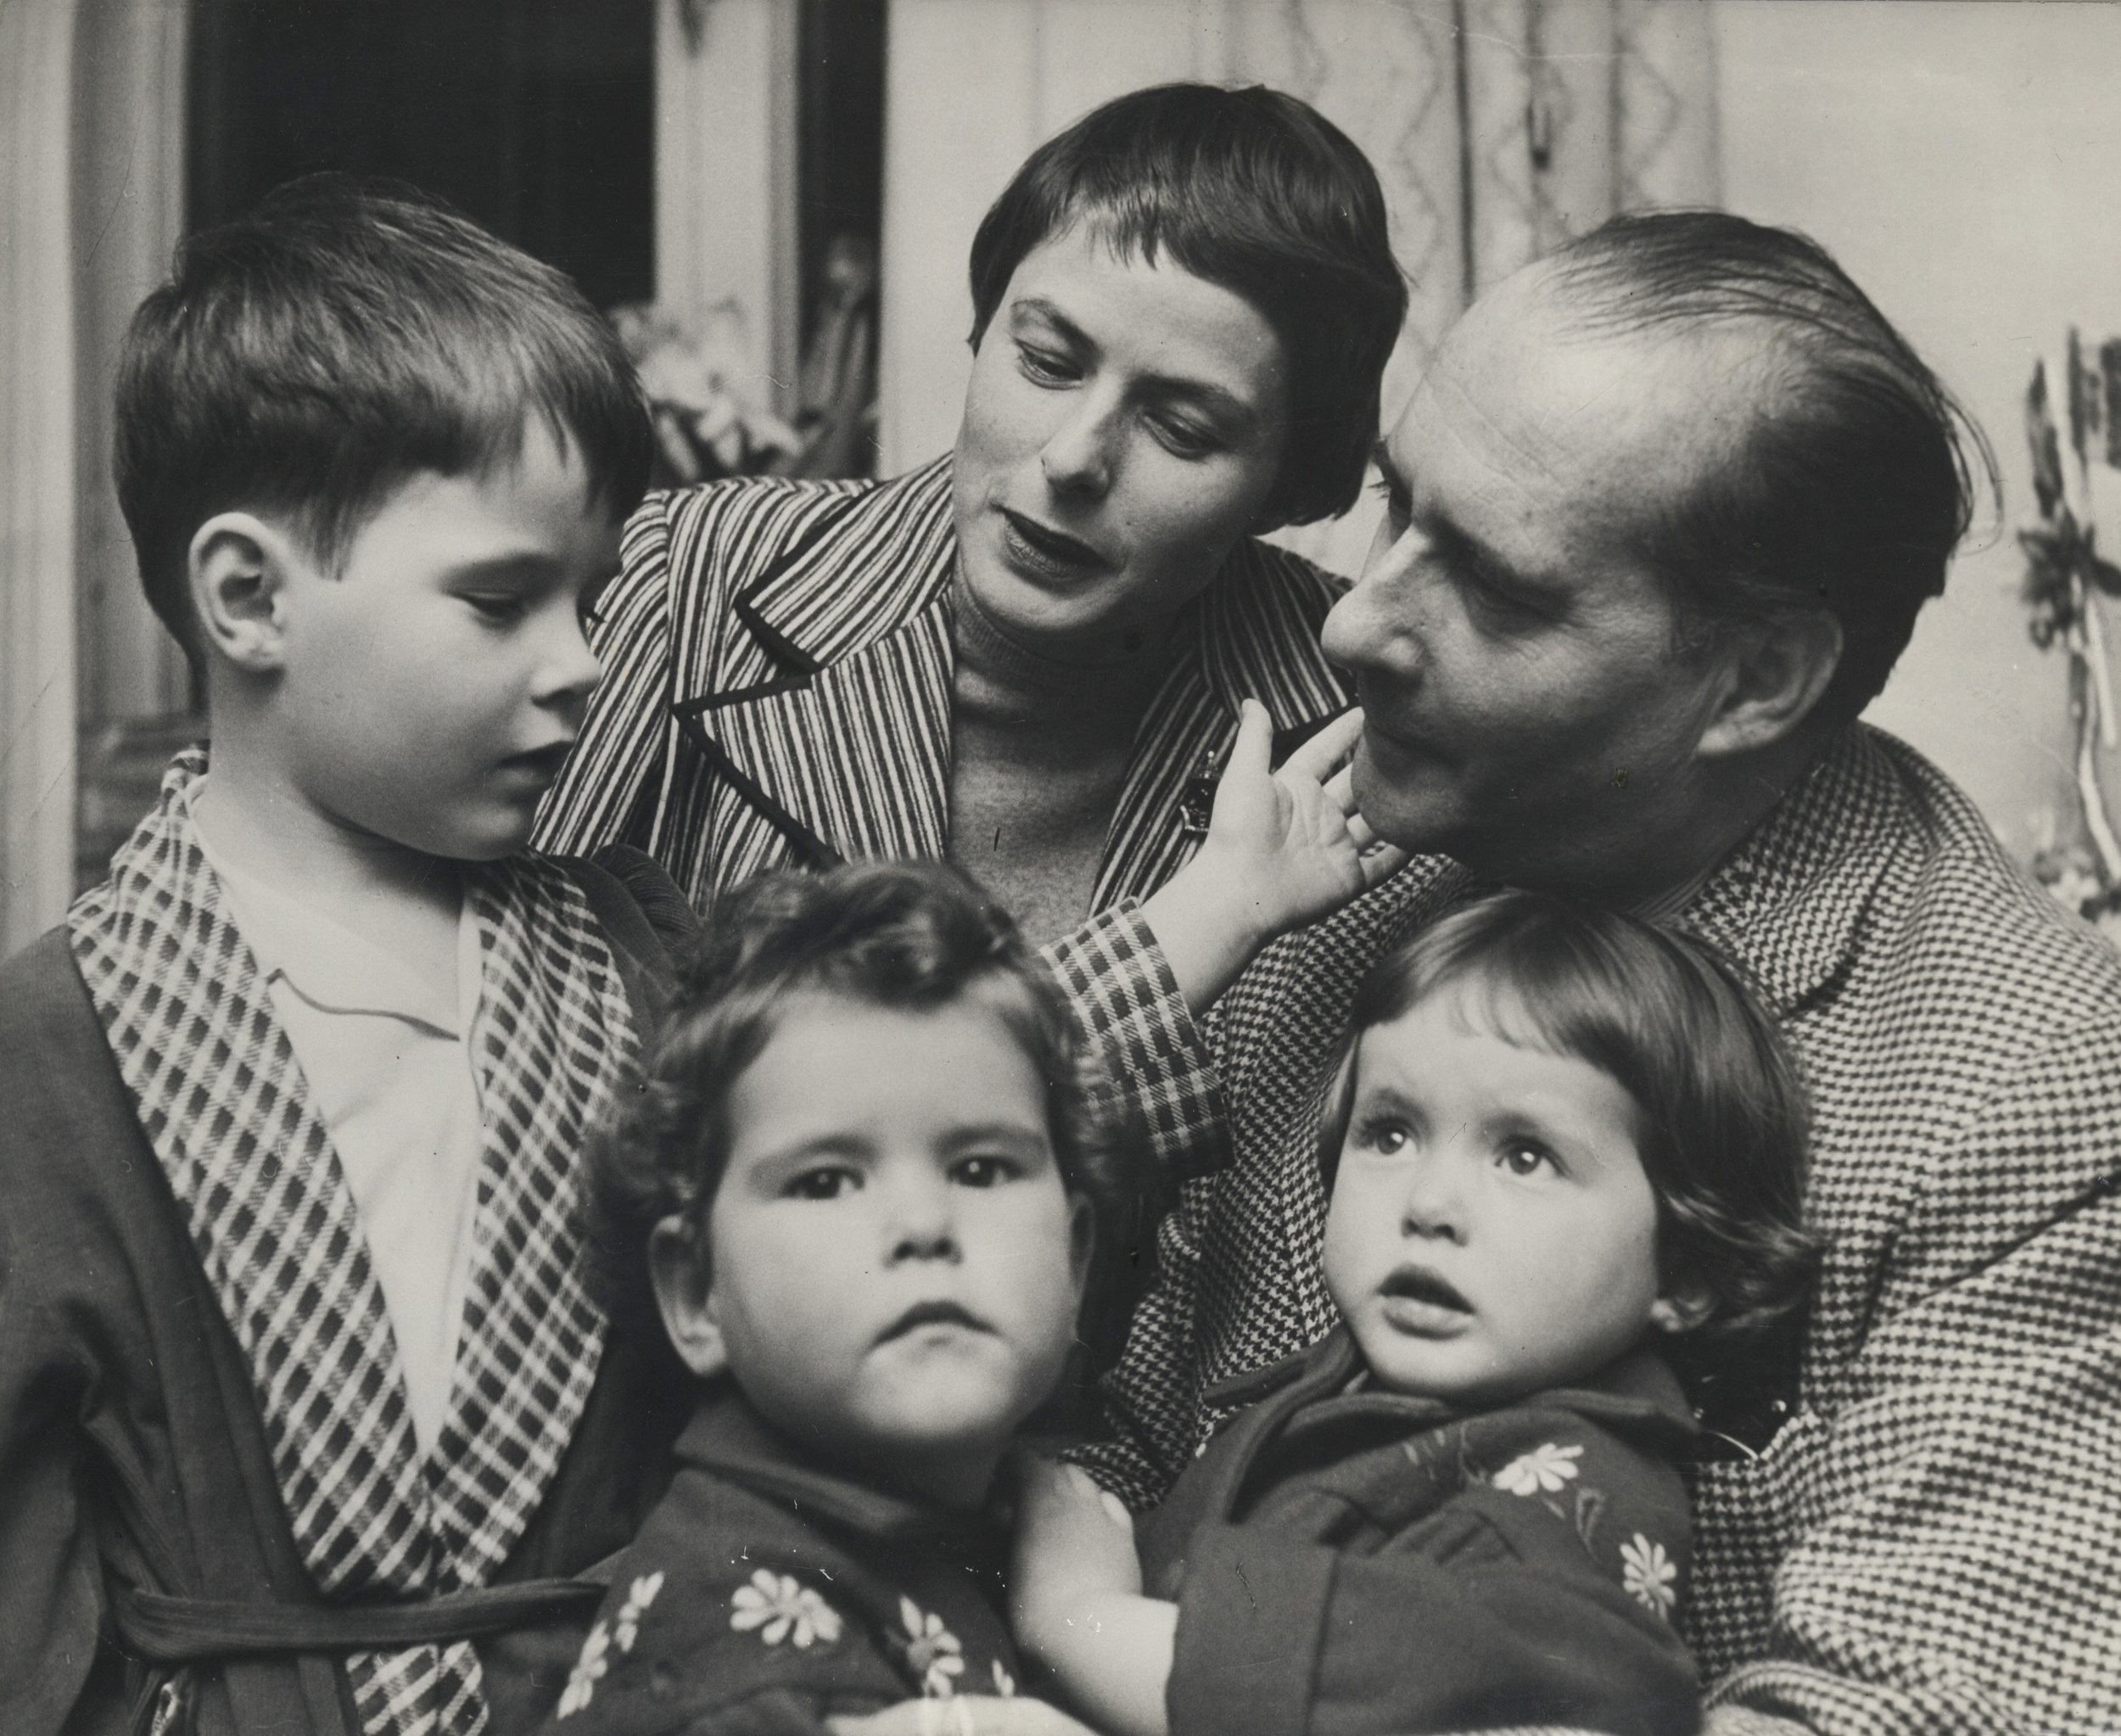 Ingrid Bergman and Roberto Rossellini with their three children, Roberto, Ingrid and Isabella.